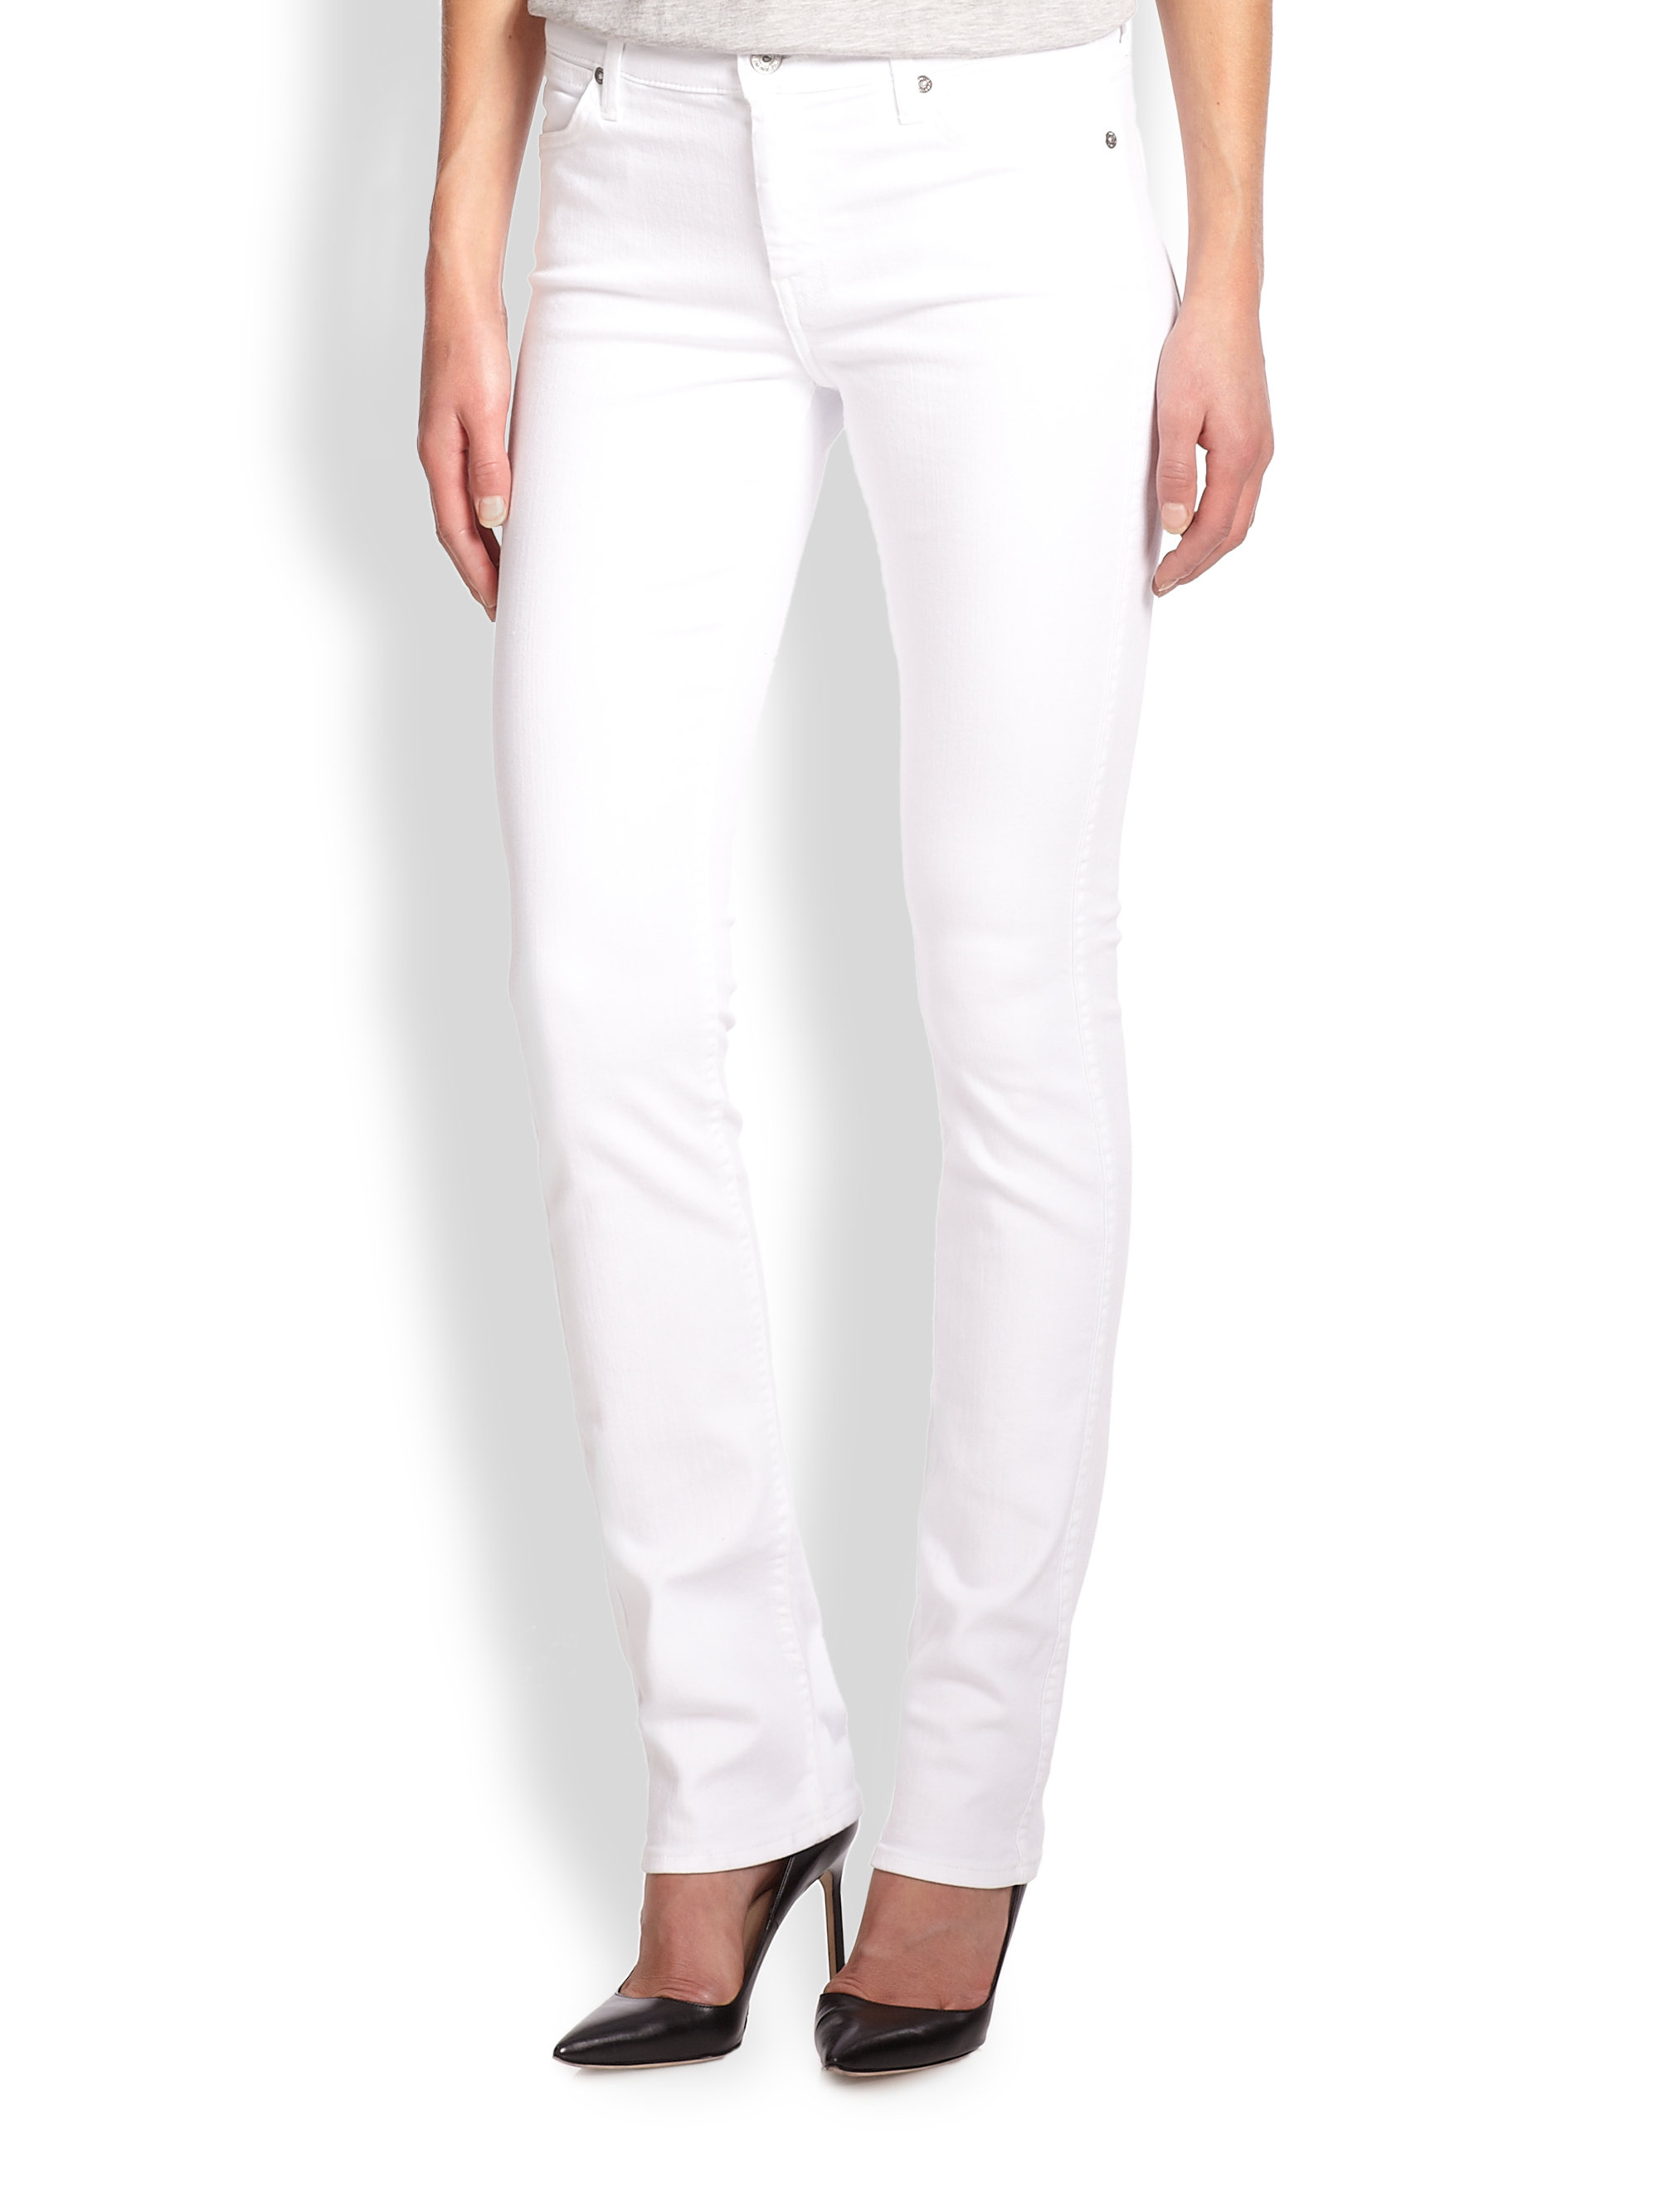 Find great deals on eBay for white straight leg jeans. Shop with confidence.